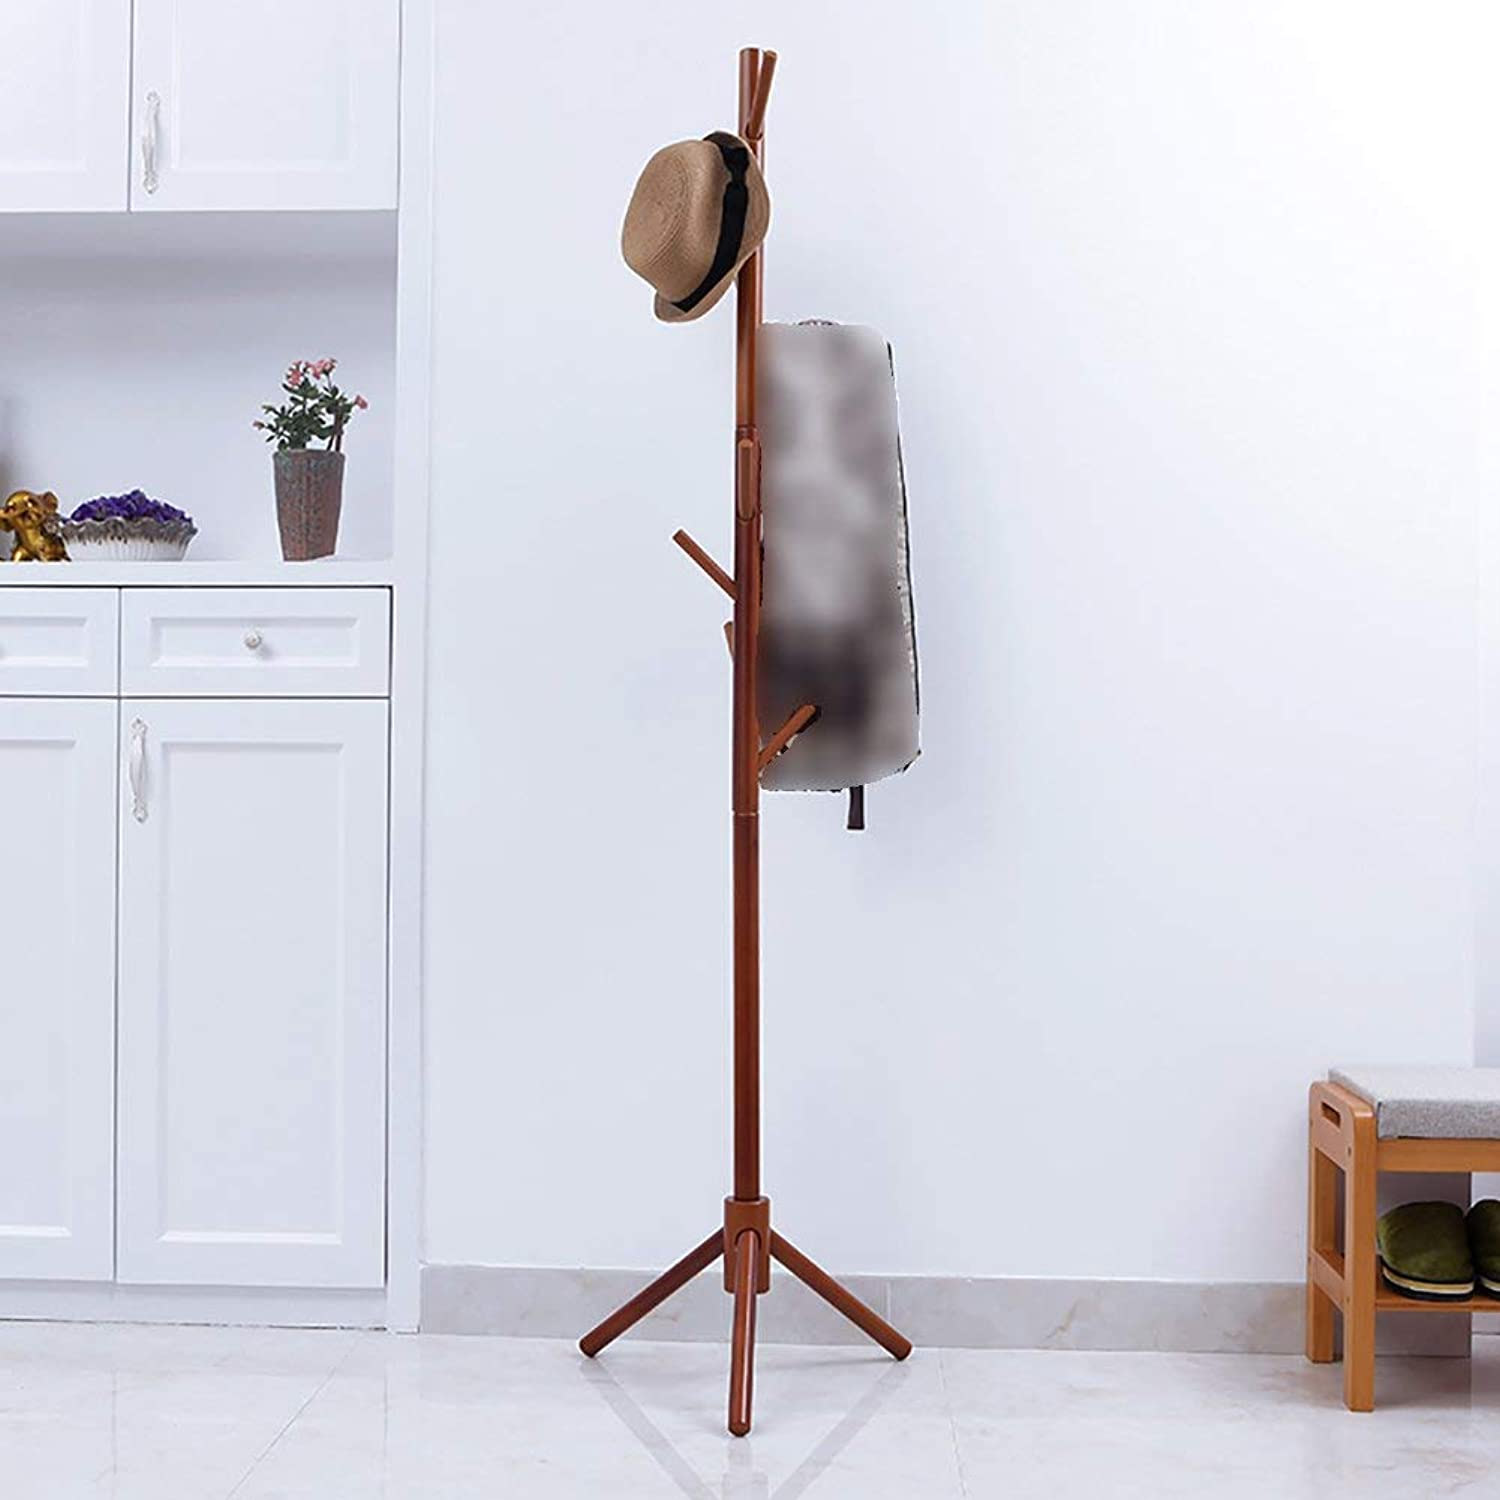 Shiyanghang Simple Modern Floor-Standing Wooden Coat Rack 46×176cm Economy Single-bar Bedroom Foyer Entrance Hanger (color   Brown)